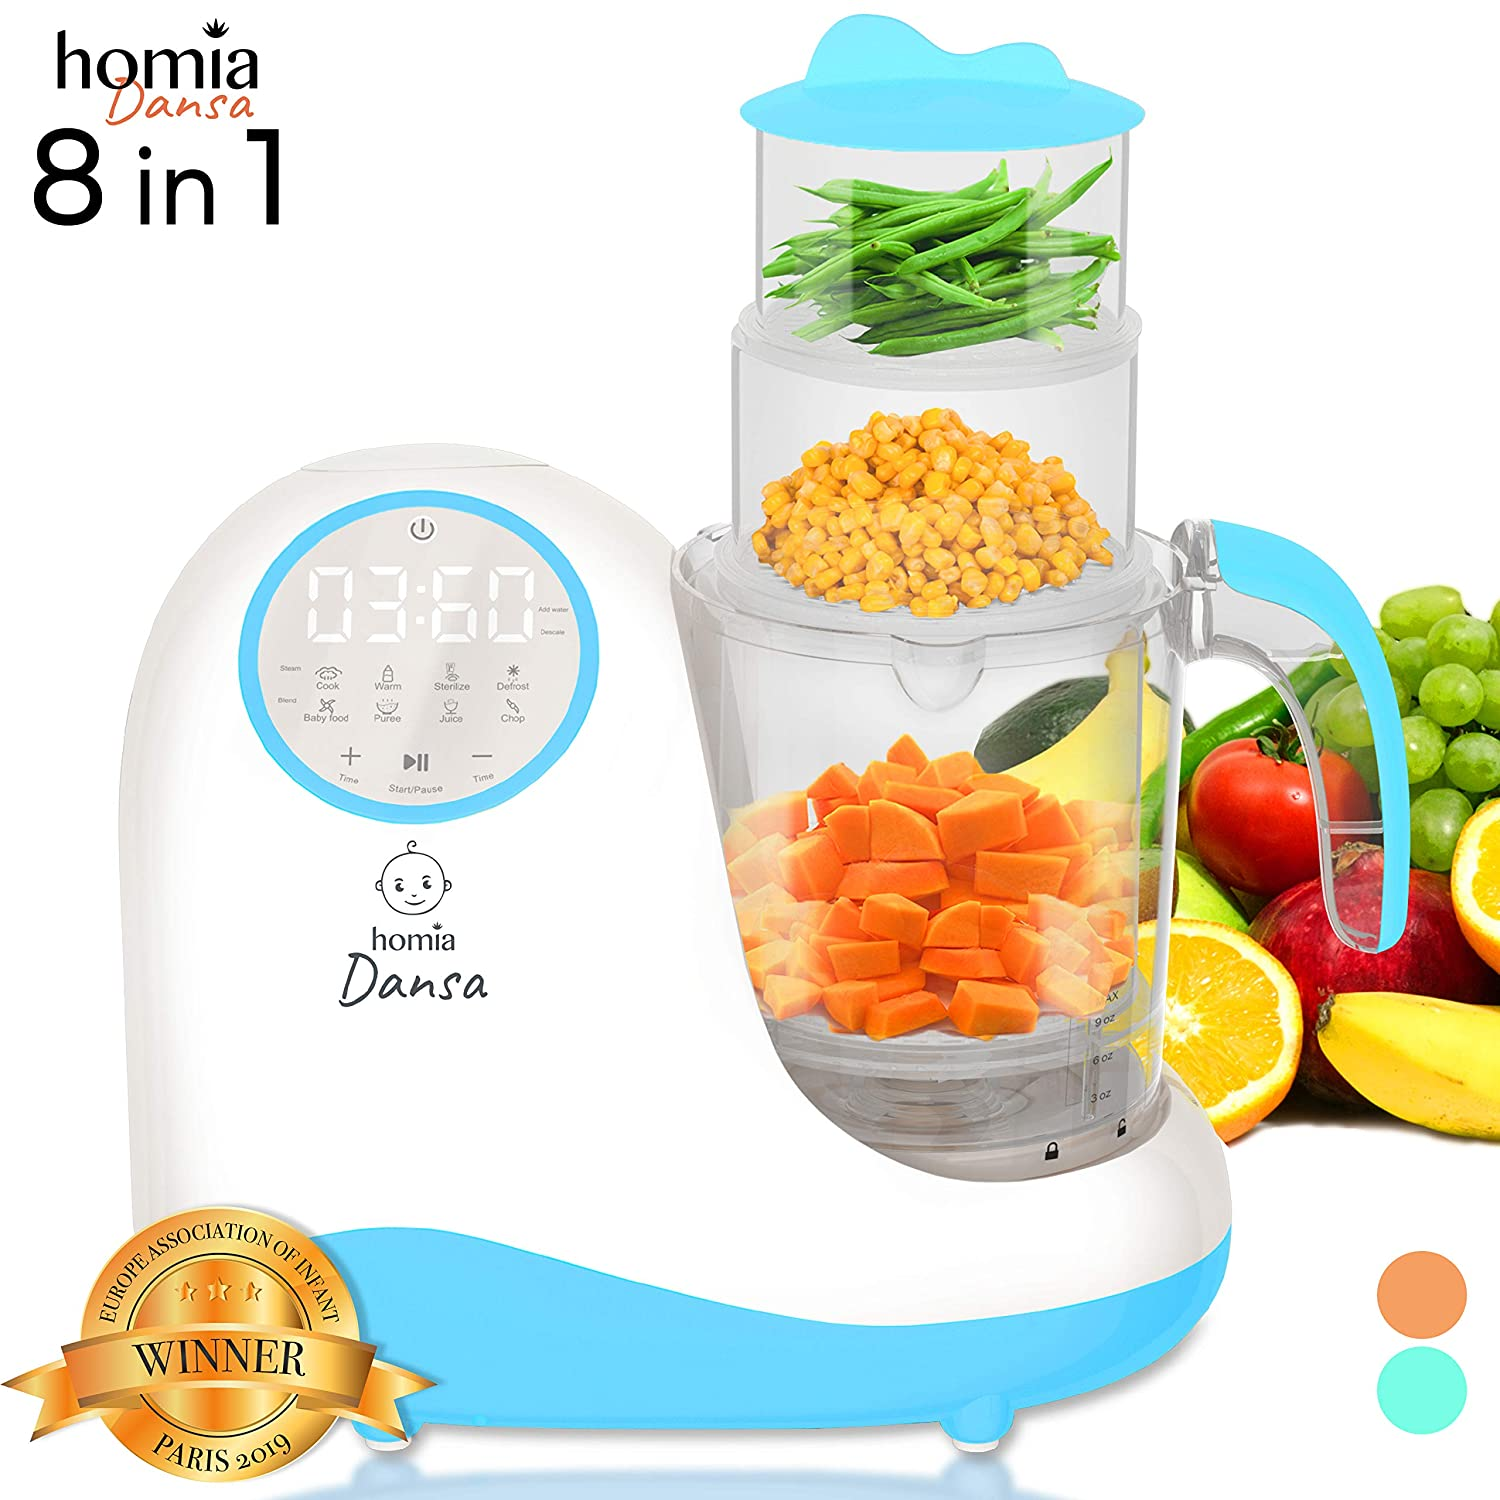 Baby Food Maker Chopper Grinder - Mills and Steamer 8 in 1 Processor for Toddlers - Steam, Blend, Chop, Disinfect, Clean, 20 Oz Tritan Stirring Cup, Touch Control Panel, Auto Shut-Off, 110V Only, Blue